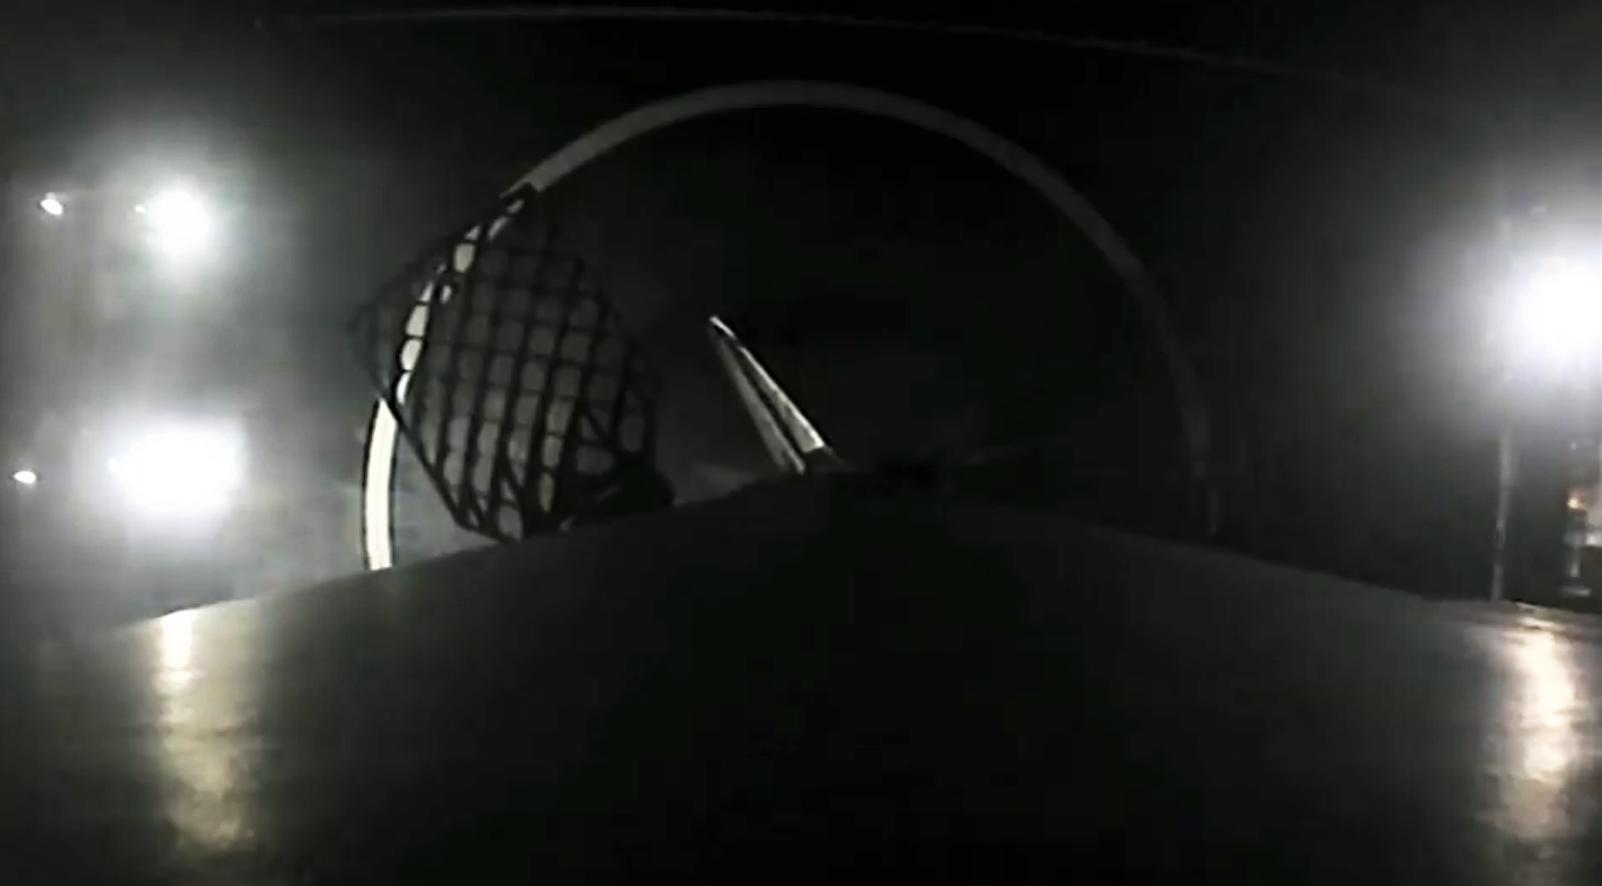 Falcon 9 B1056 infrared landing (SpaceX) 10